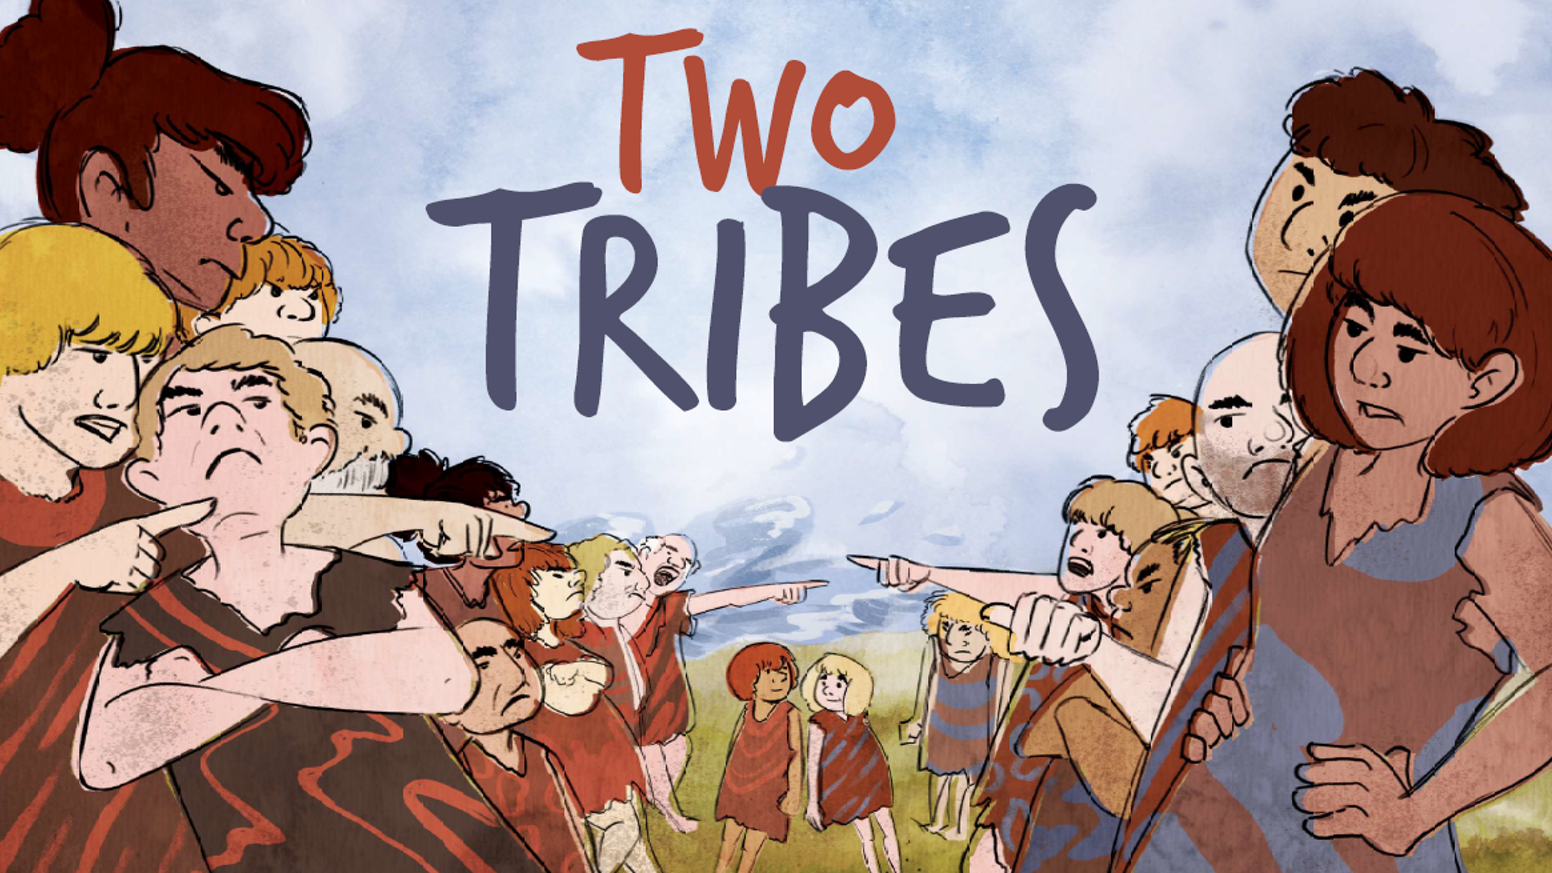 The epic allegory of our left and right-leaning ancestors, Two Tribes is the antidote to political polarization.